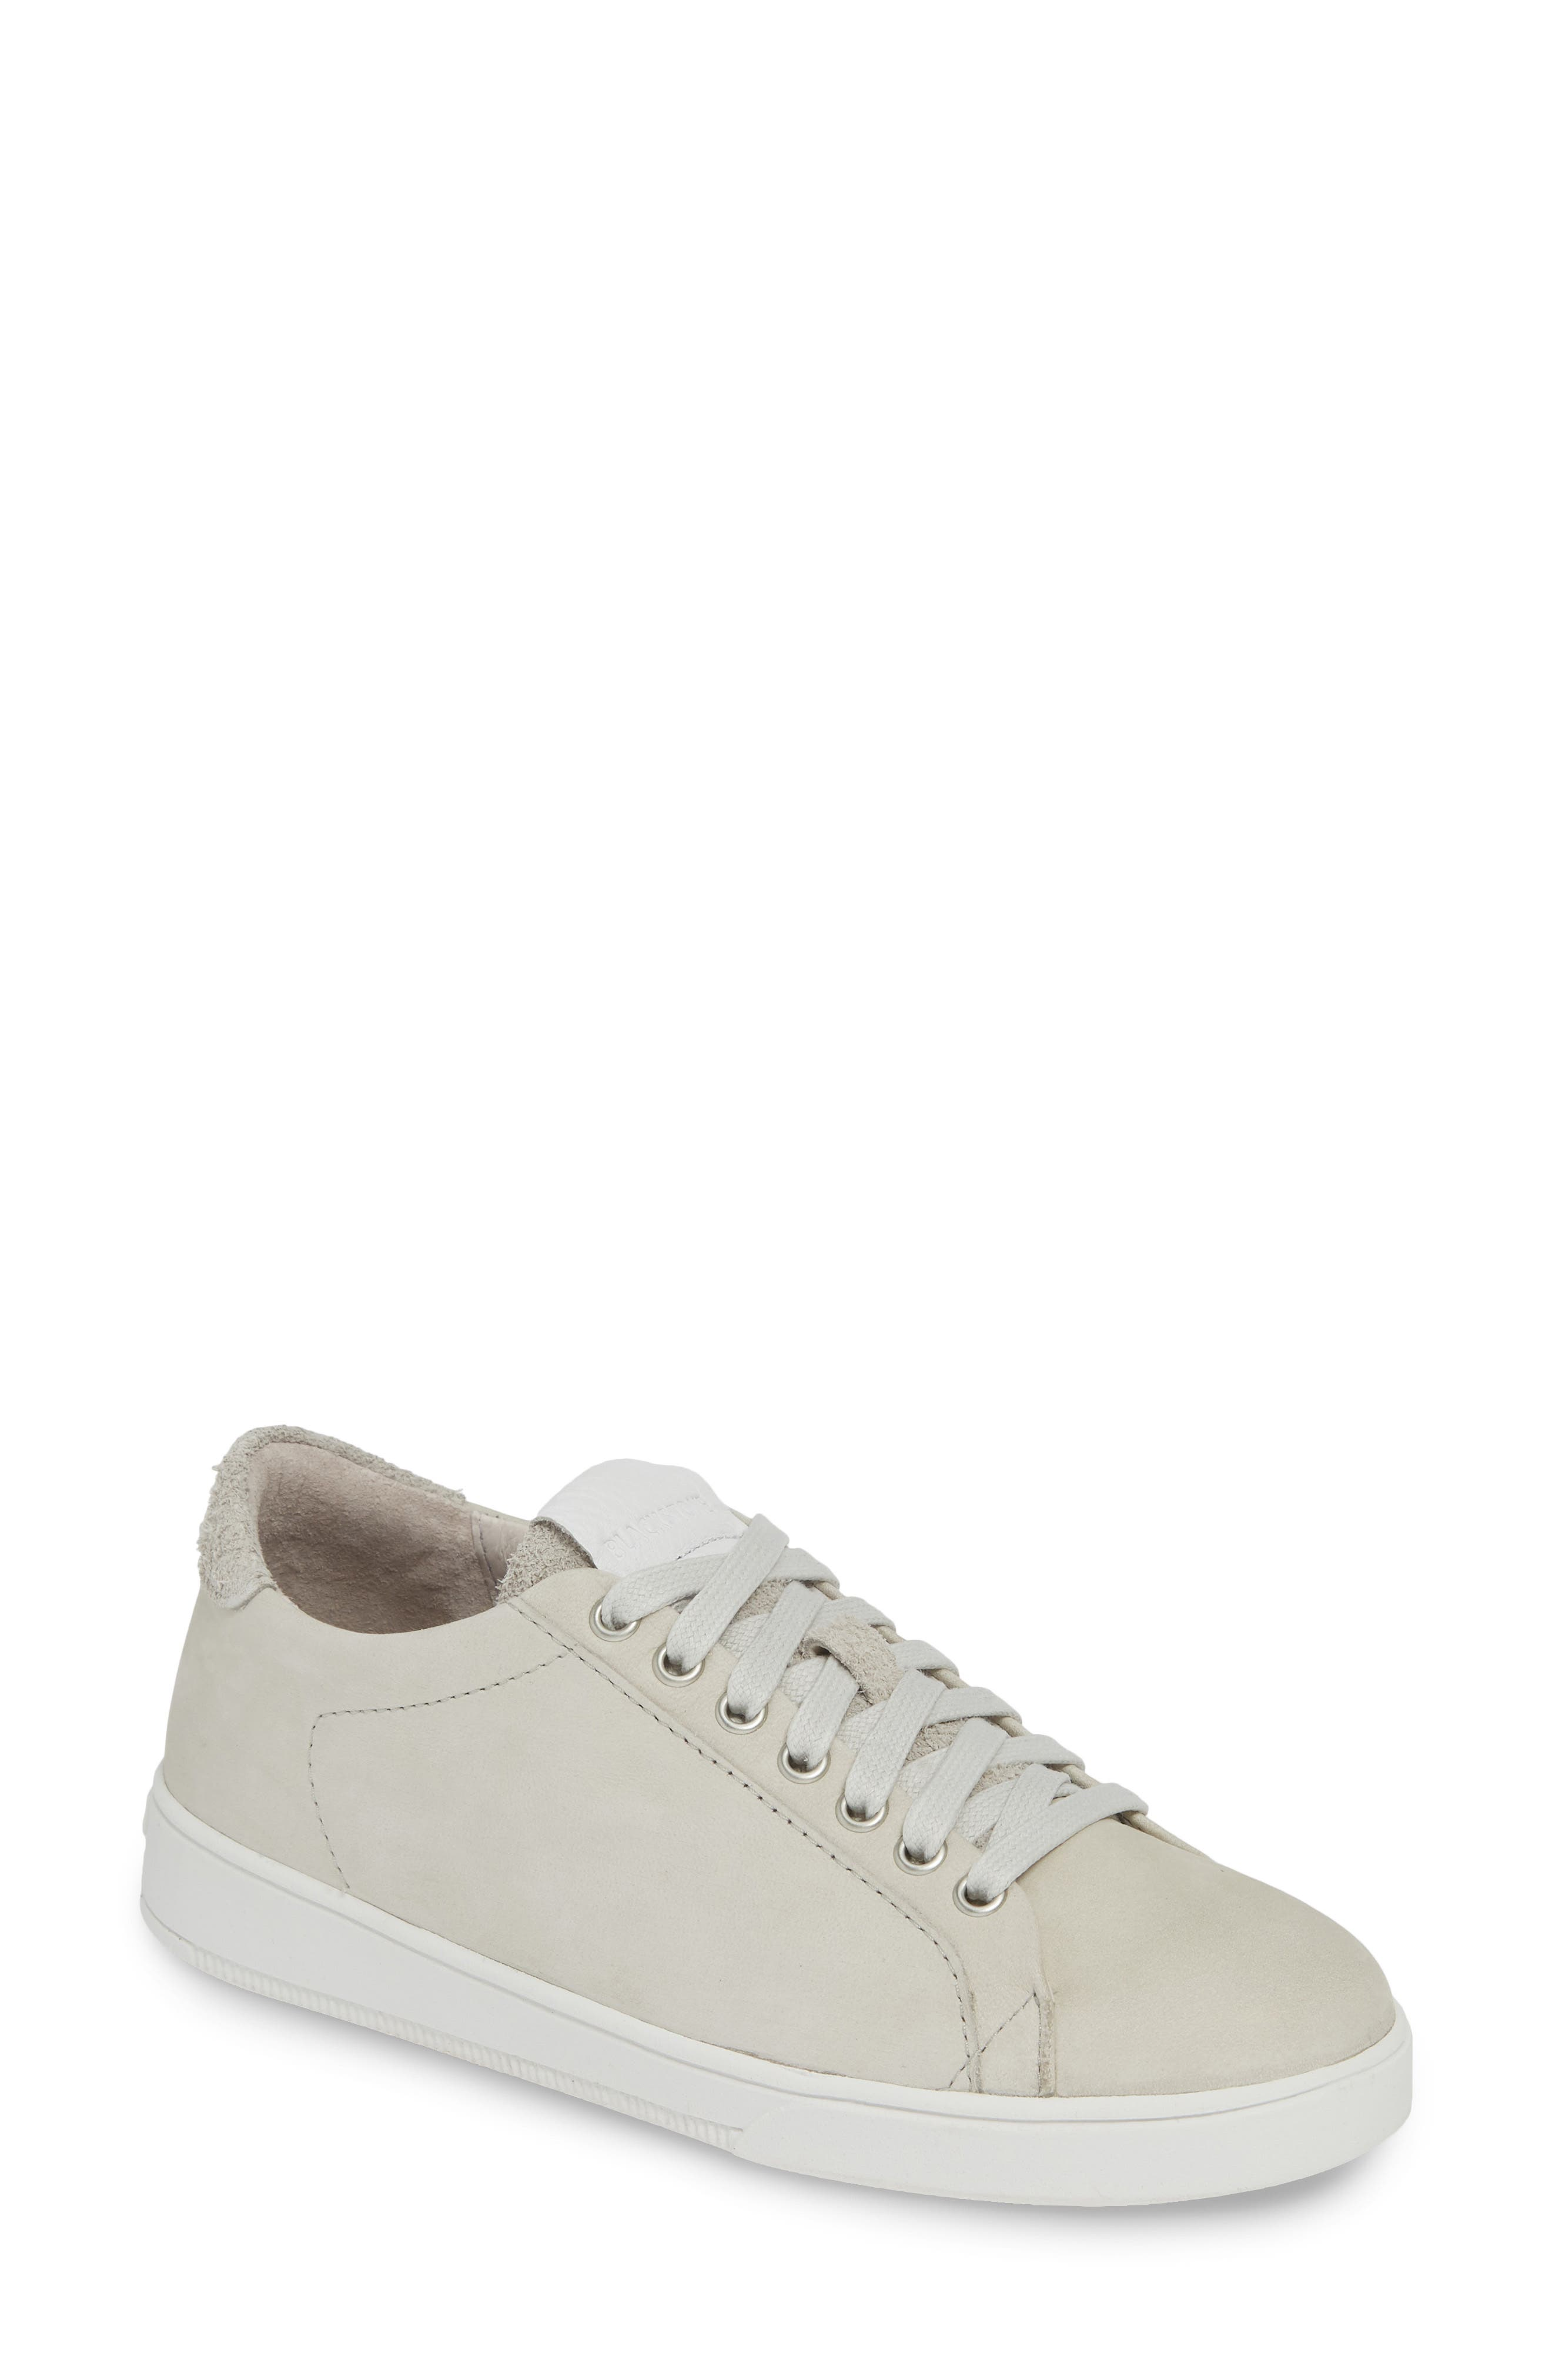 RL85 Low Top Sneaker, Main, color, MOONSTRUCK LEATHER